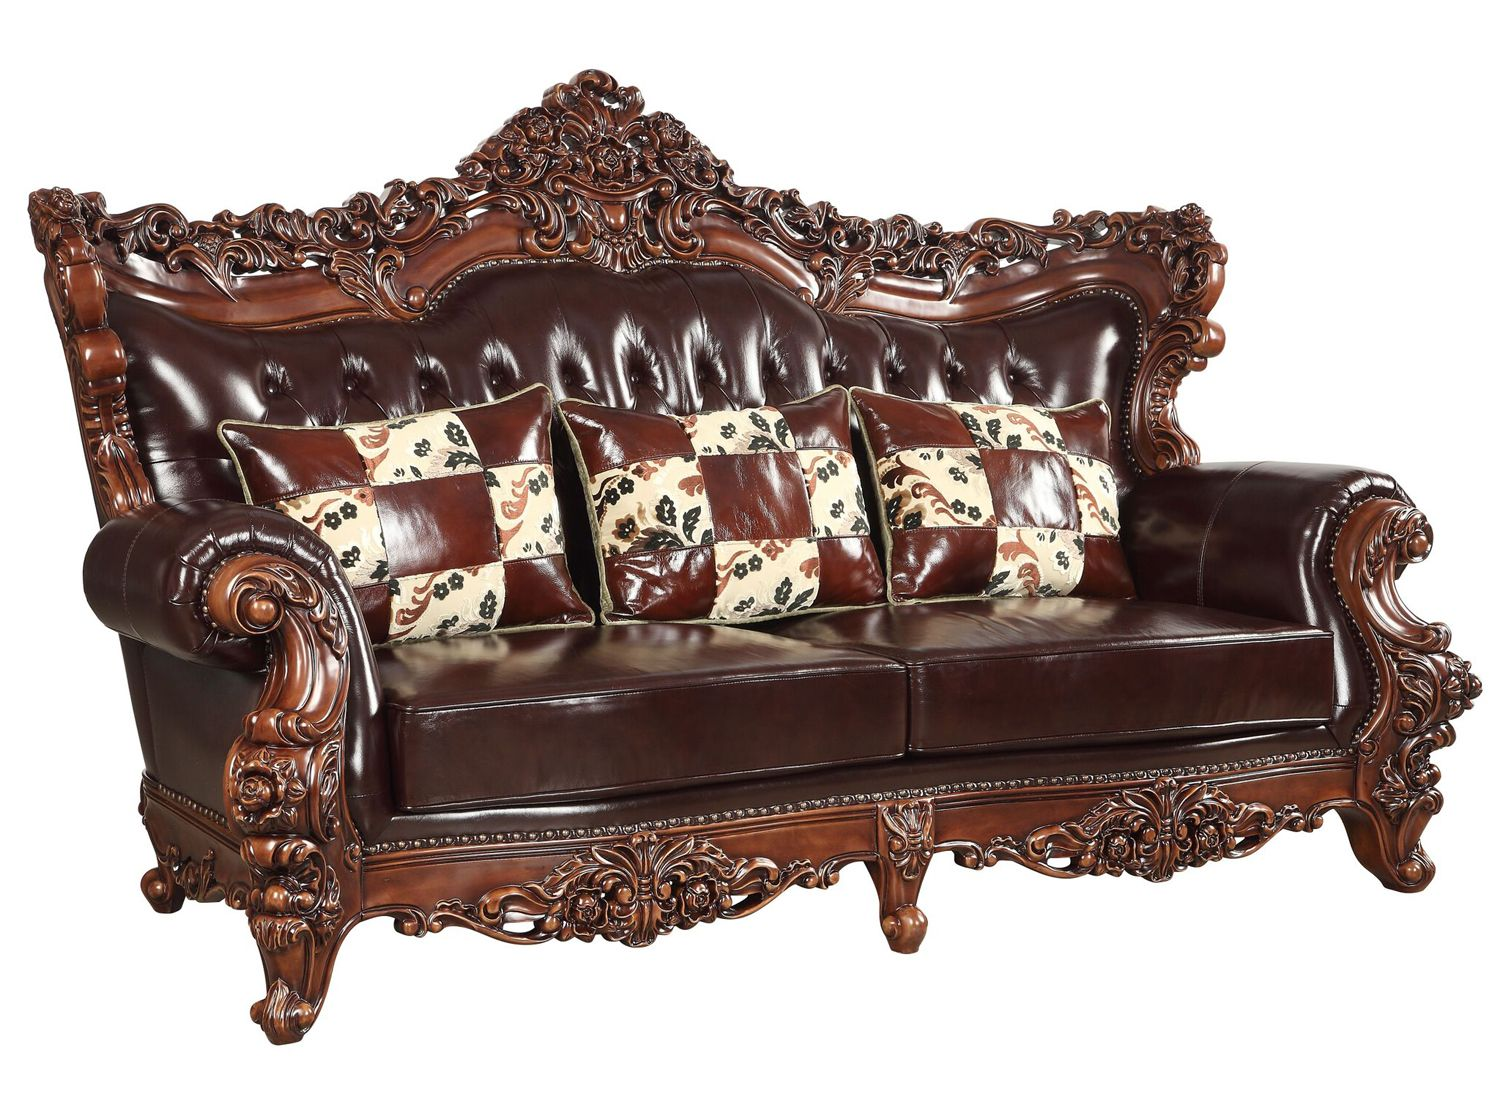 Tufted Leather Sofas Amp Furniture Shop Factory Direct